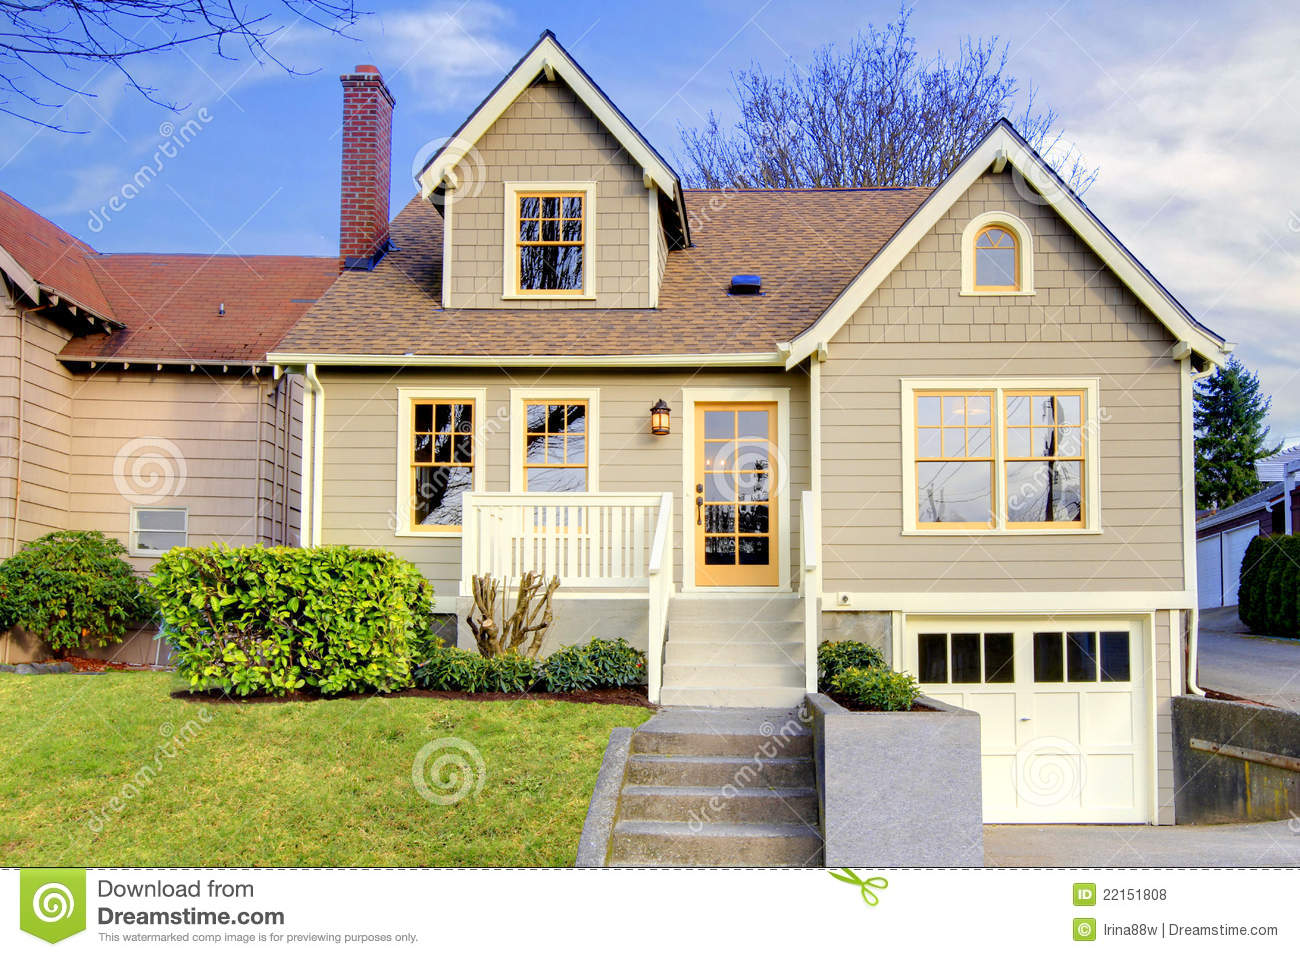 Covered front porch craftsman style home royalty free stock image - Cute Small Craftsman Style Home Royalty Free Stock Photos